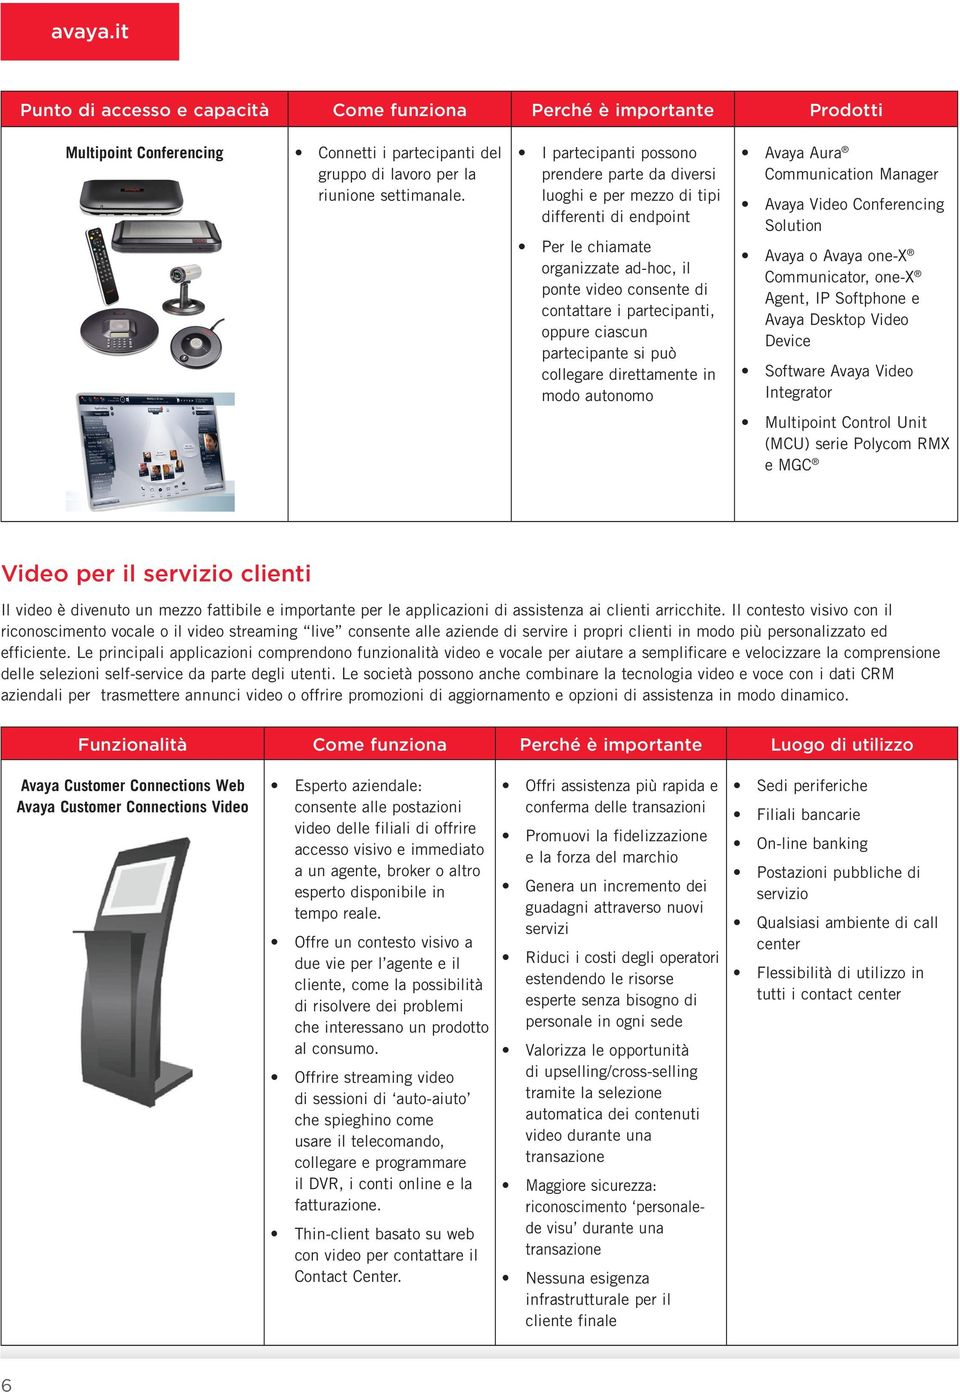 ciascun partecipante si può collegare direttamente in modo autonomo Avaya Aura Avaya o Avaya one X Communicator, one X Agent, IP Softphone e Avaya Desktop Video Device Multipoint Control Unit (MCU)